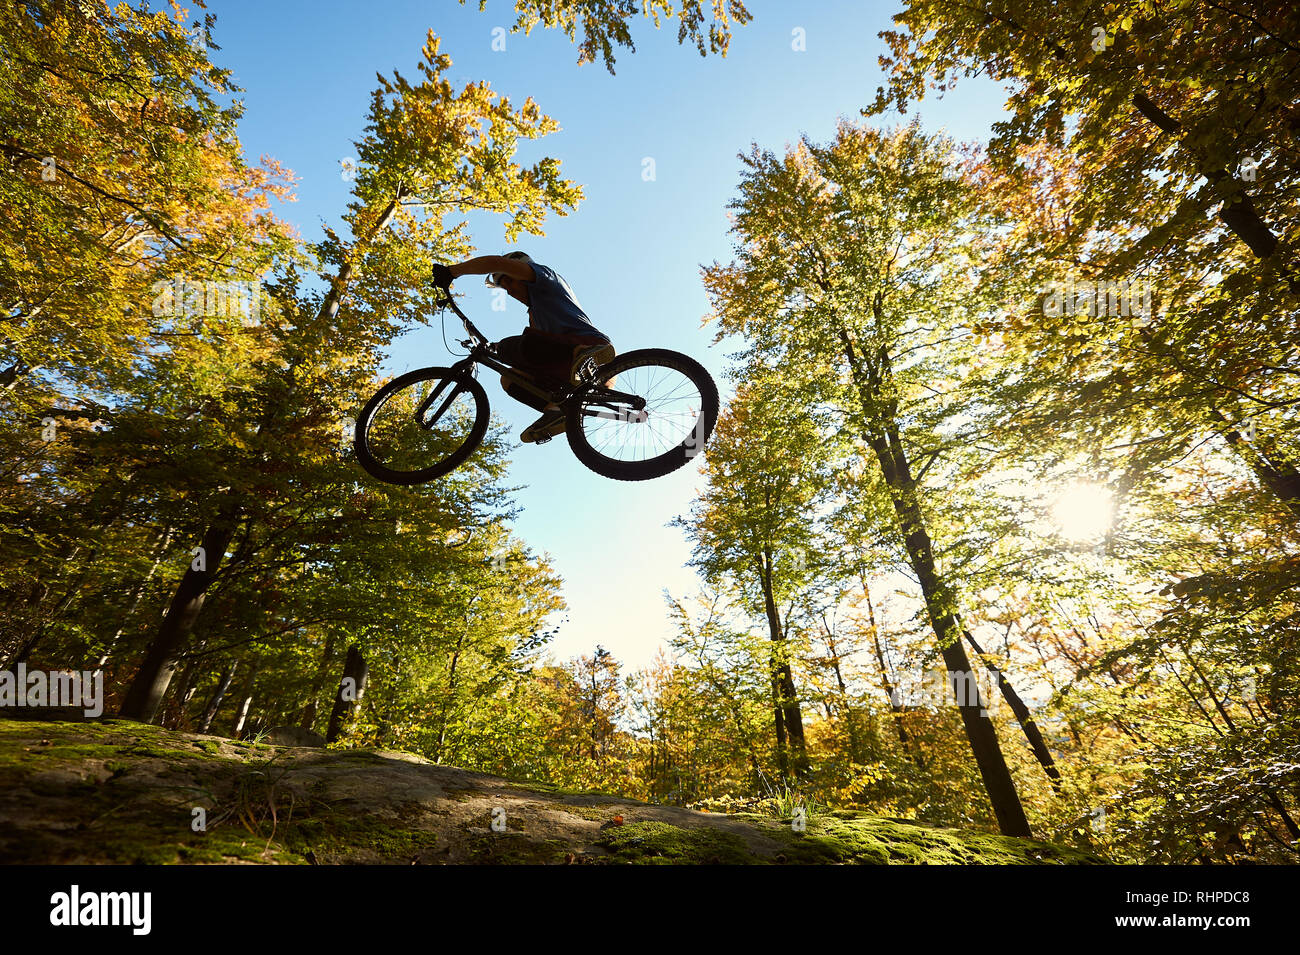 Low angle view of sportsman cyclist jumping on trial bicycle, professional rider making acrobatic trick on big boulder in the forest on summer sunny day. Concept of extreme sport active lifestyle Stock Photo